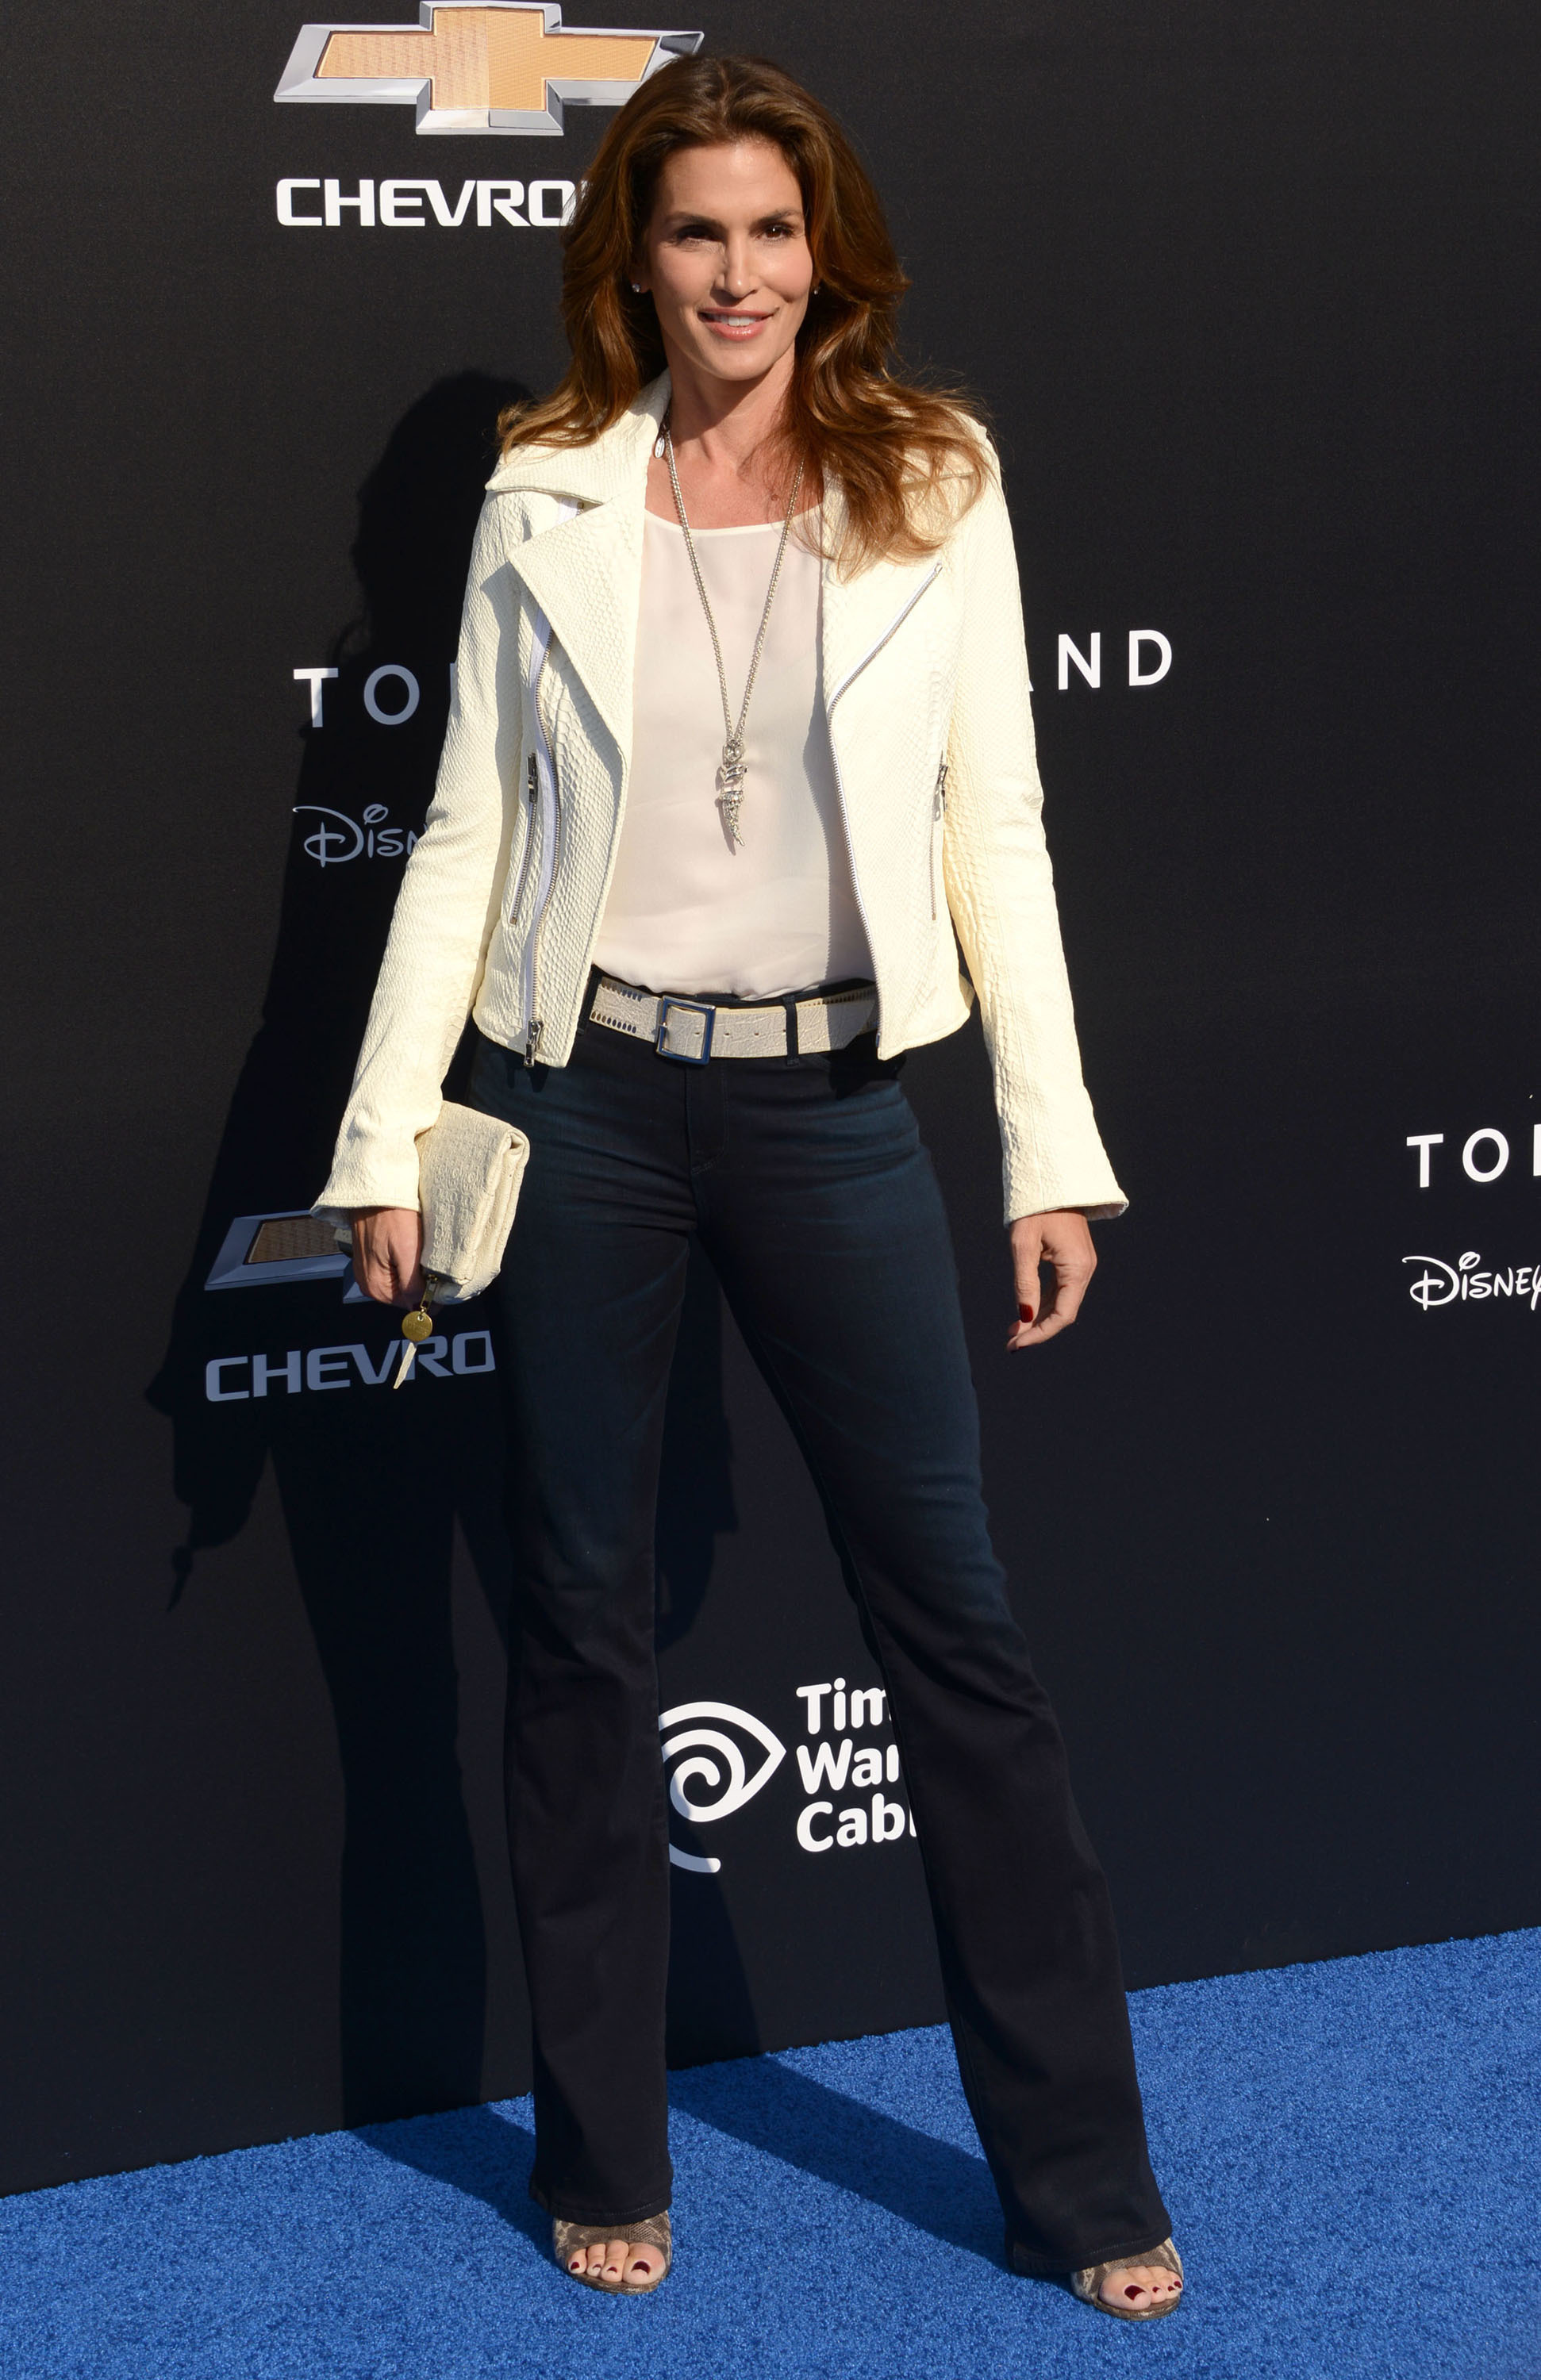 Why Cindy Crawford is jealous of today's models